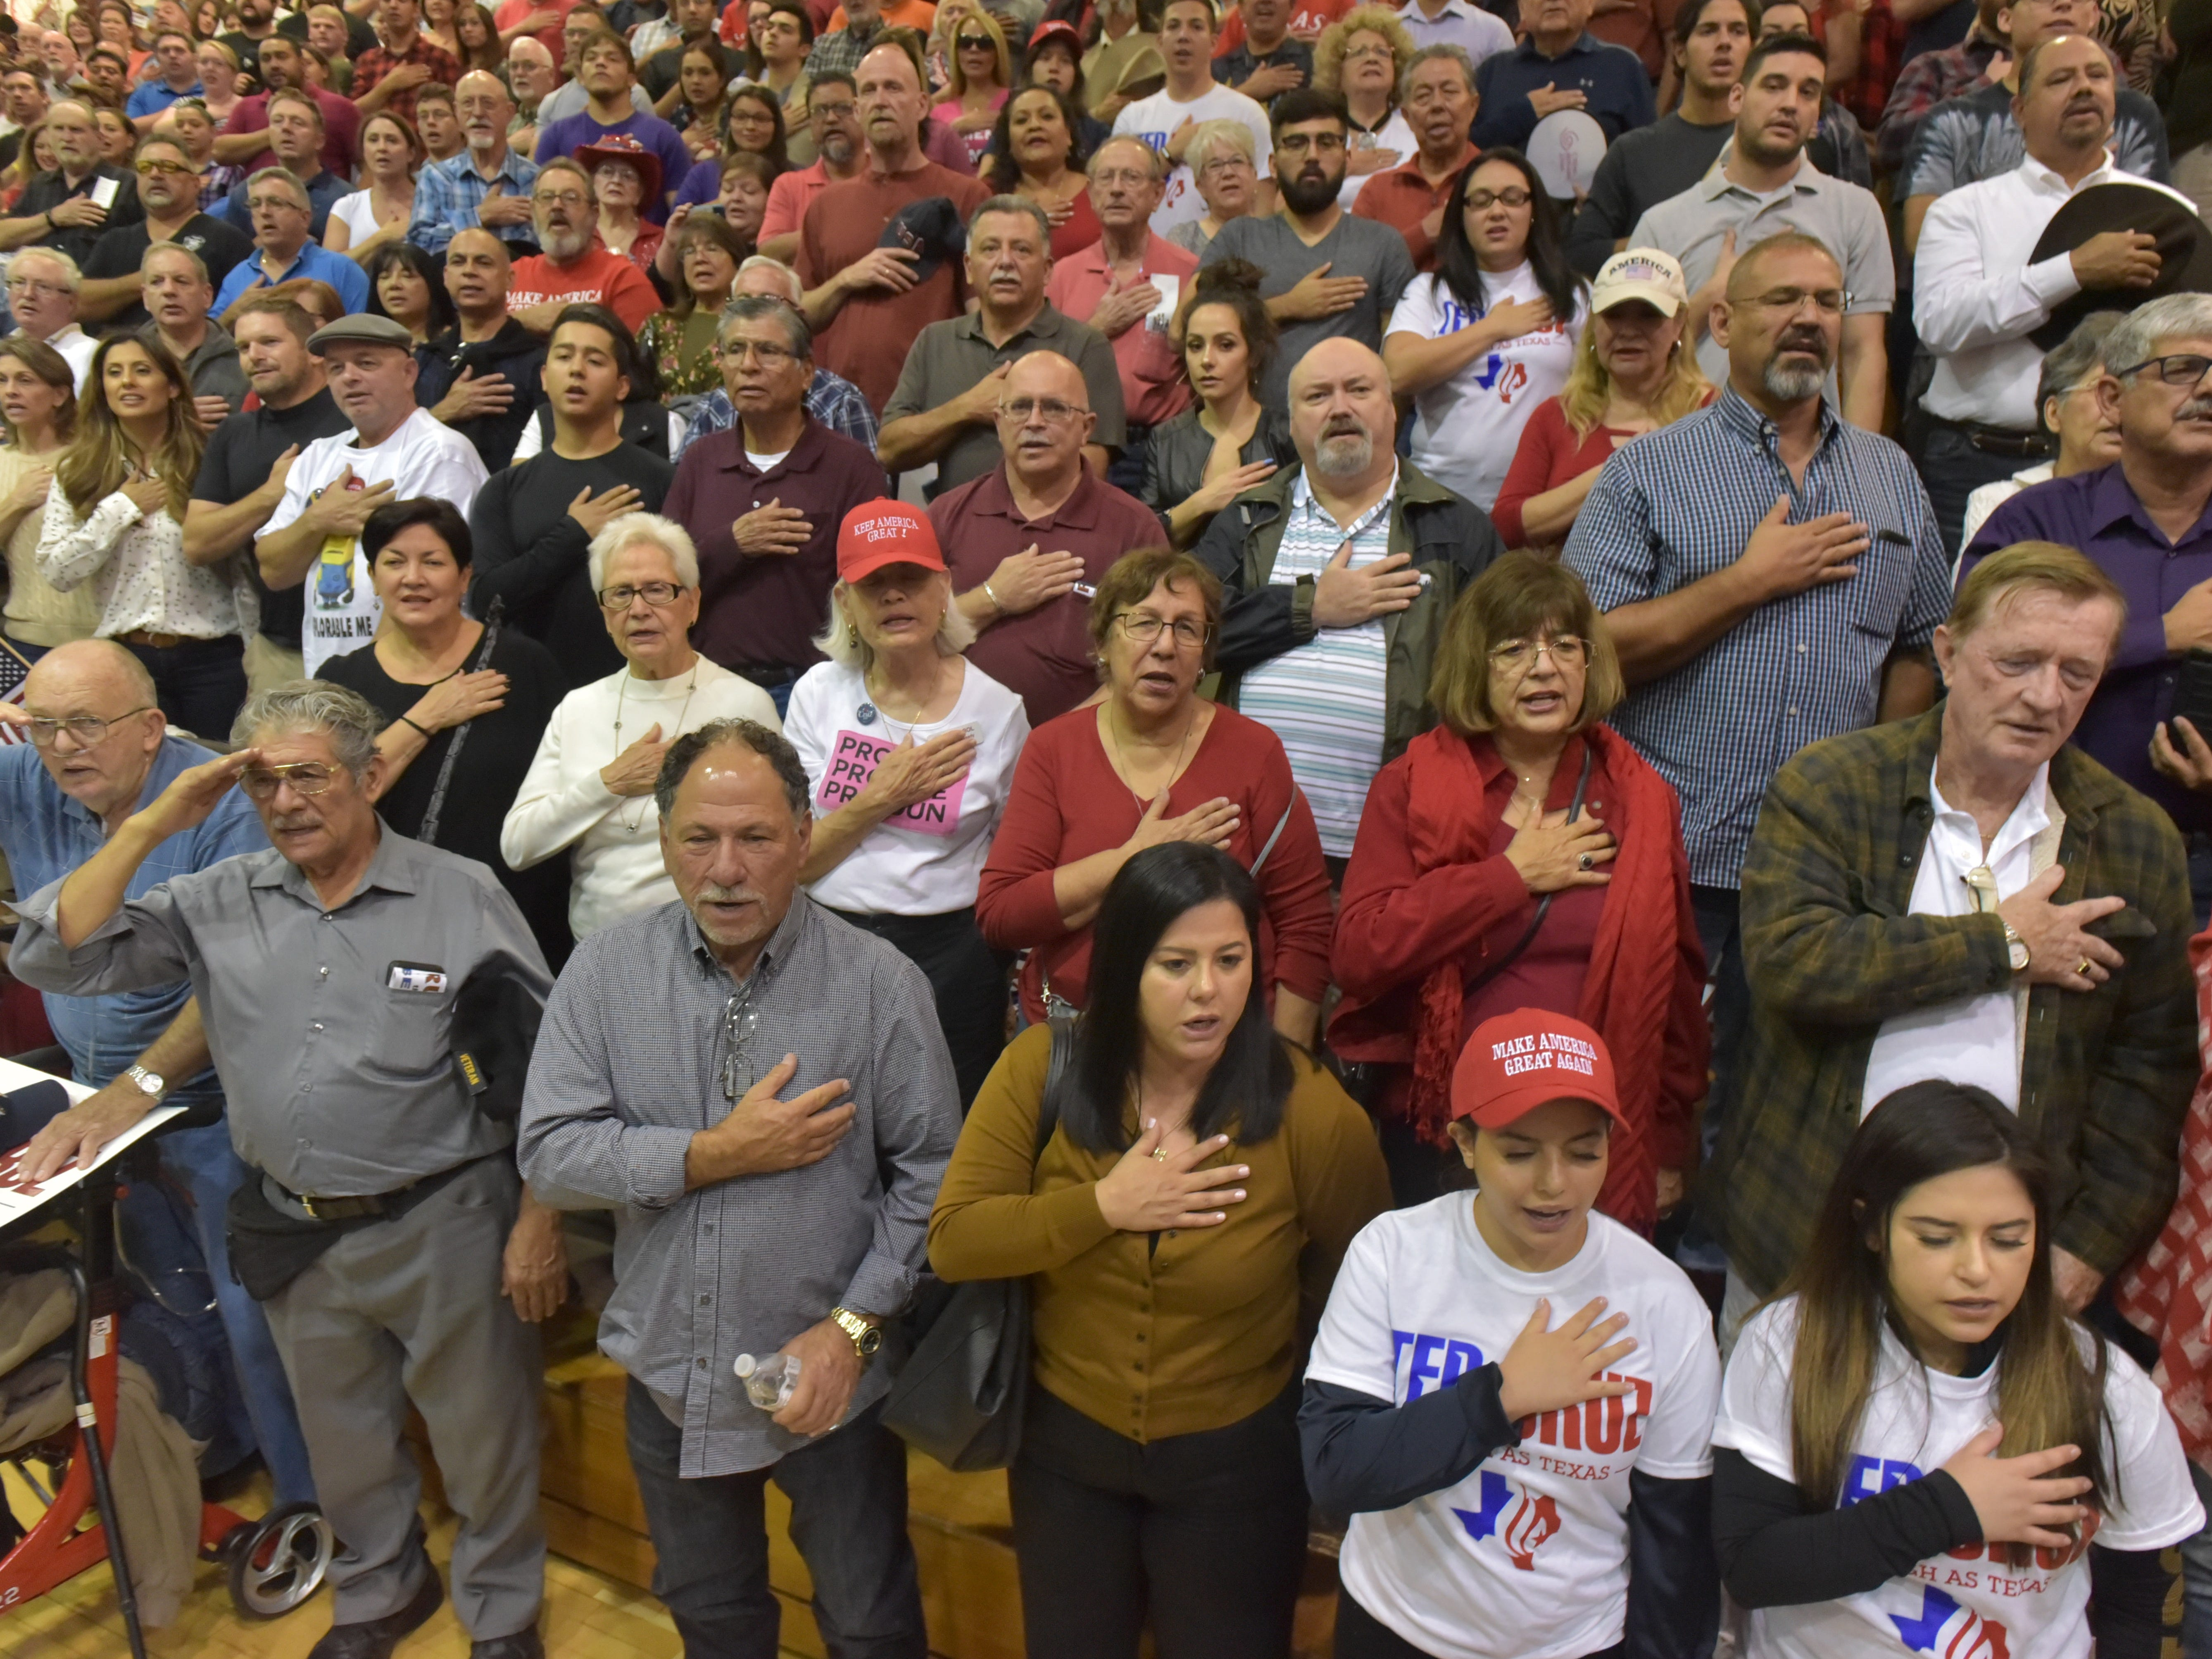 El Pasoans prepare for Texas Senator Ted Cruz to arrive as he made a stop in El Paso Saturday night at Franklin High School on El Paso's westside.